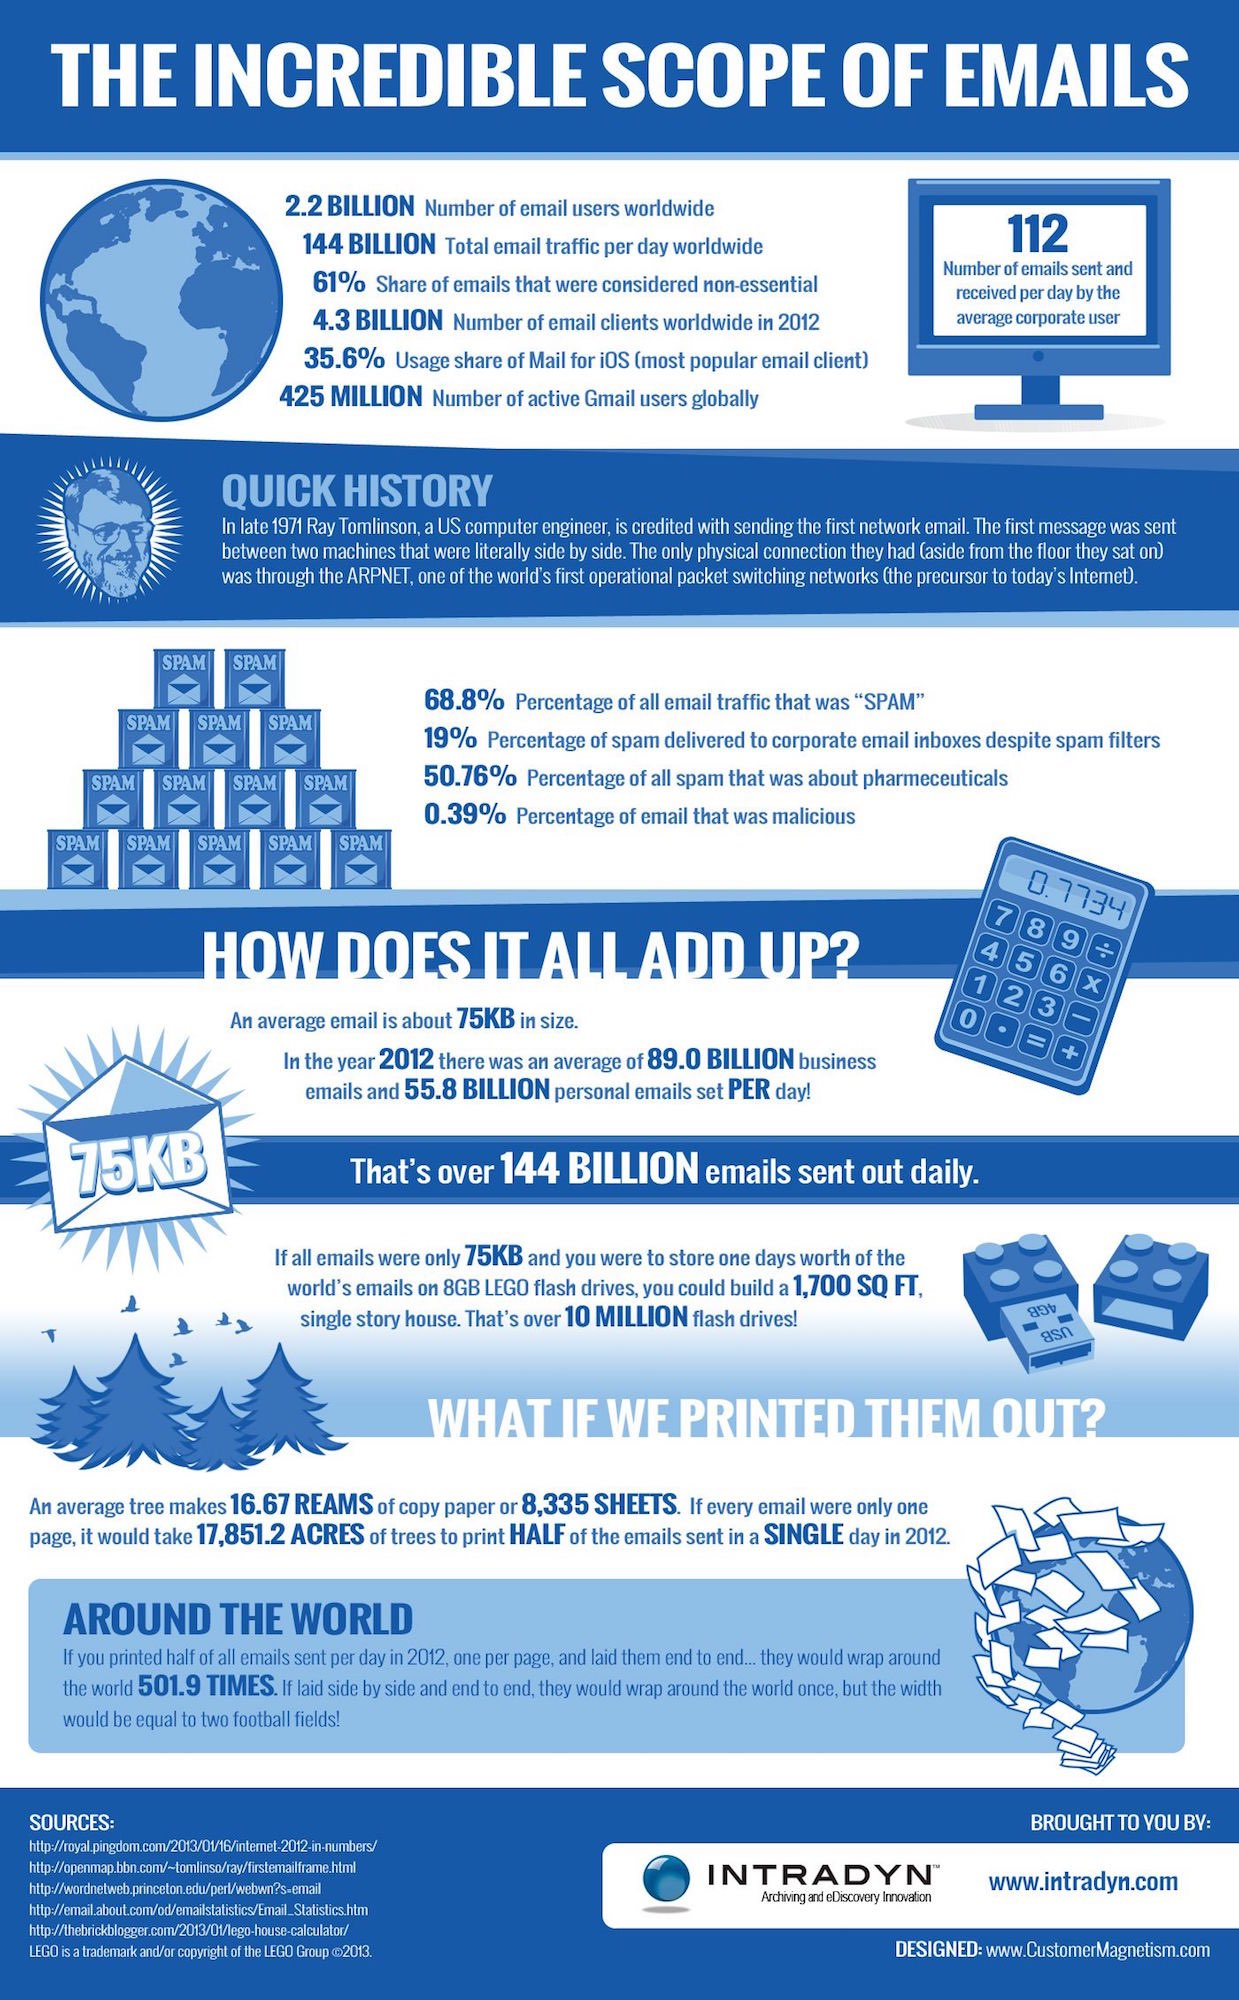 INFOGRAPHIC-Incredible-scope-of-emails